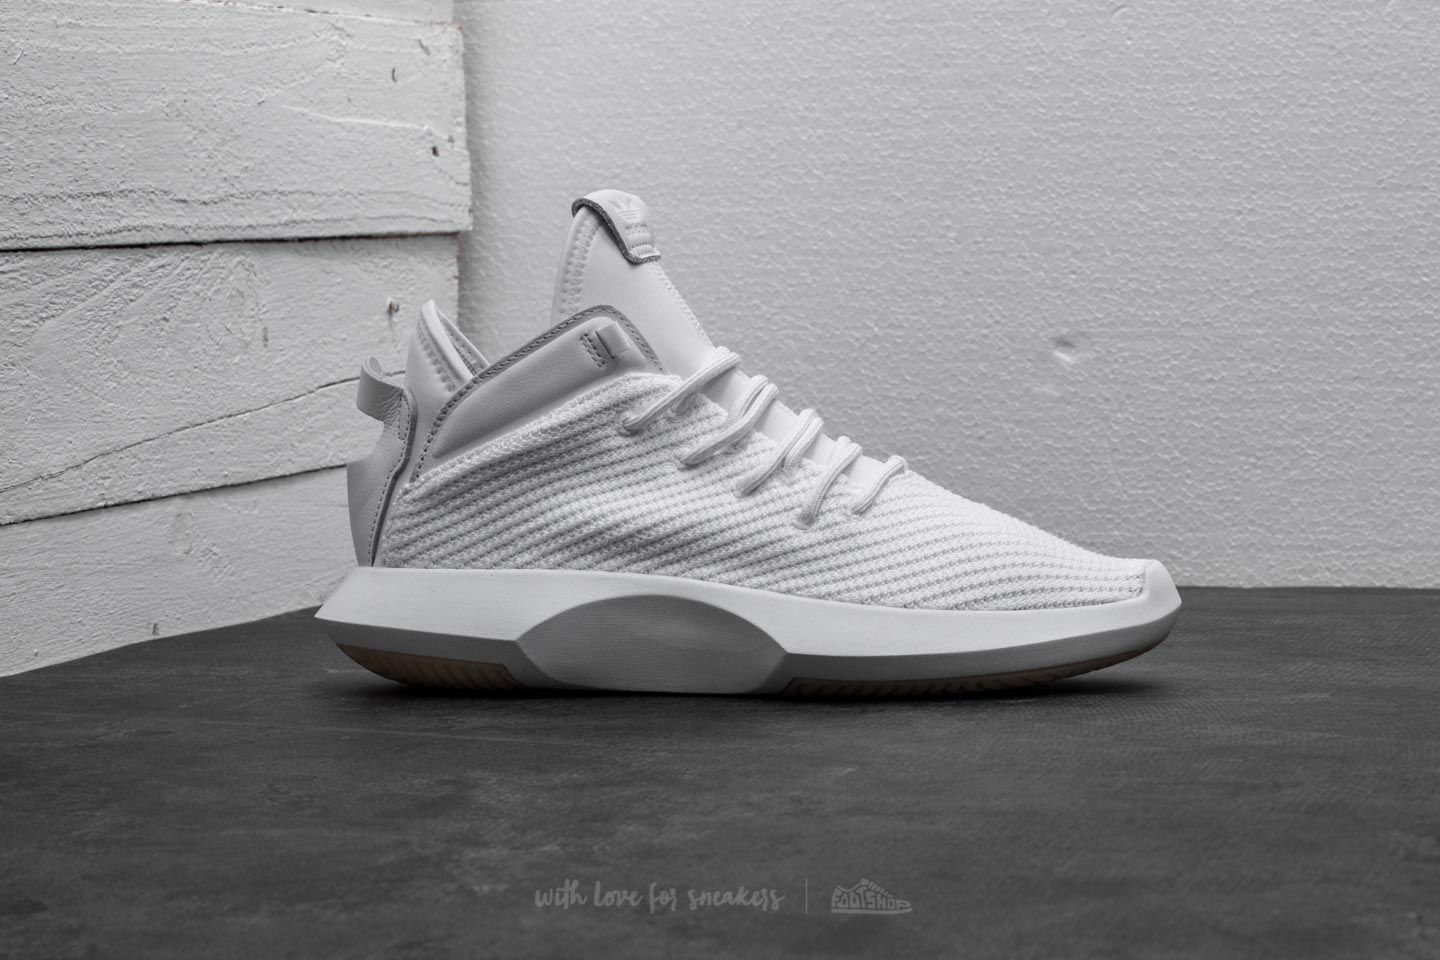 4023435c0d06 ... where to buy adidas crazy 1 adv primeknit ftw white core black gold mt  a muy